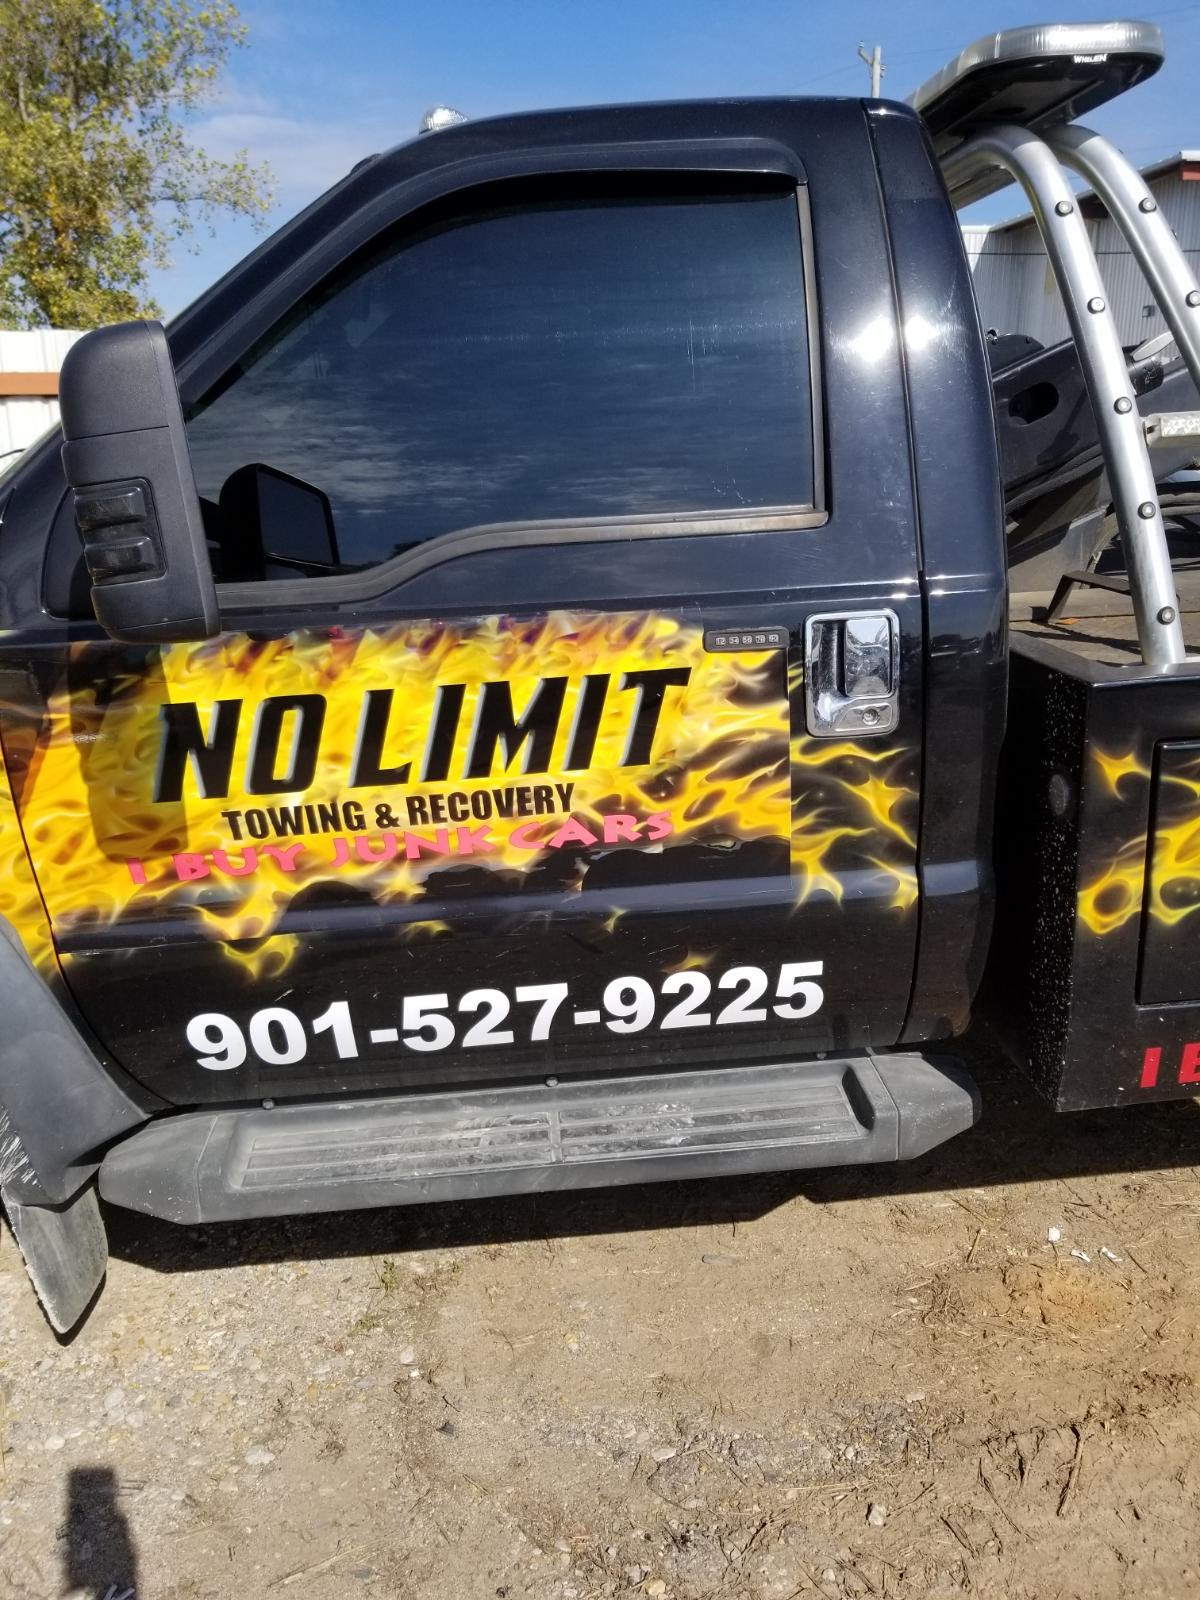 No Limit Towing & Auto image 2